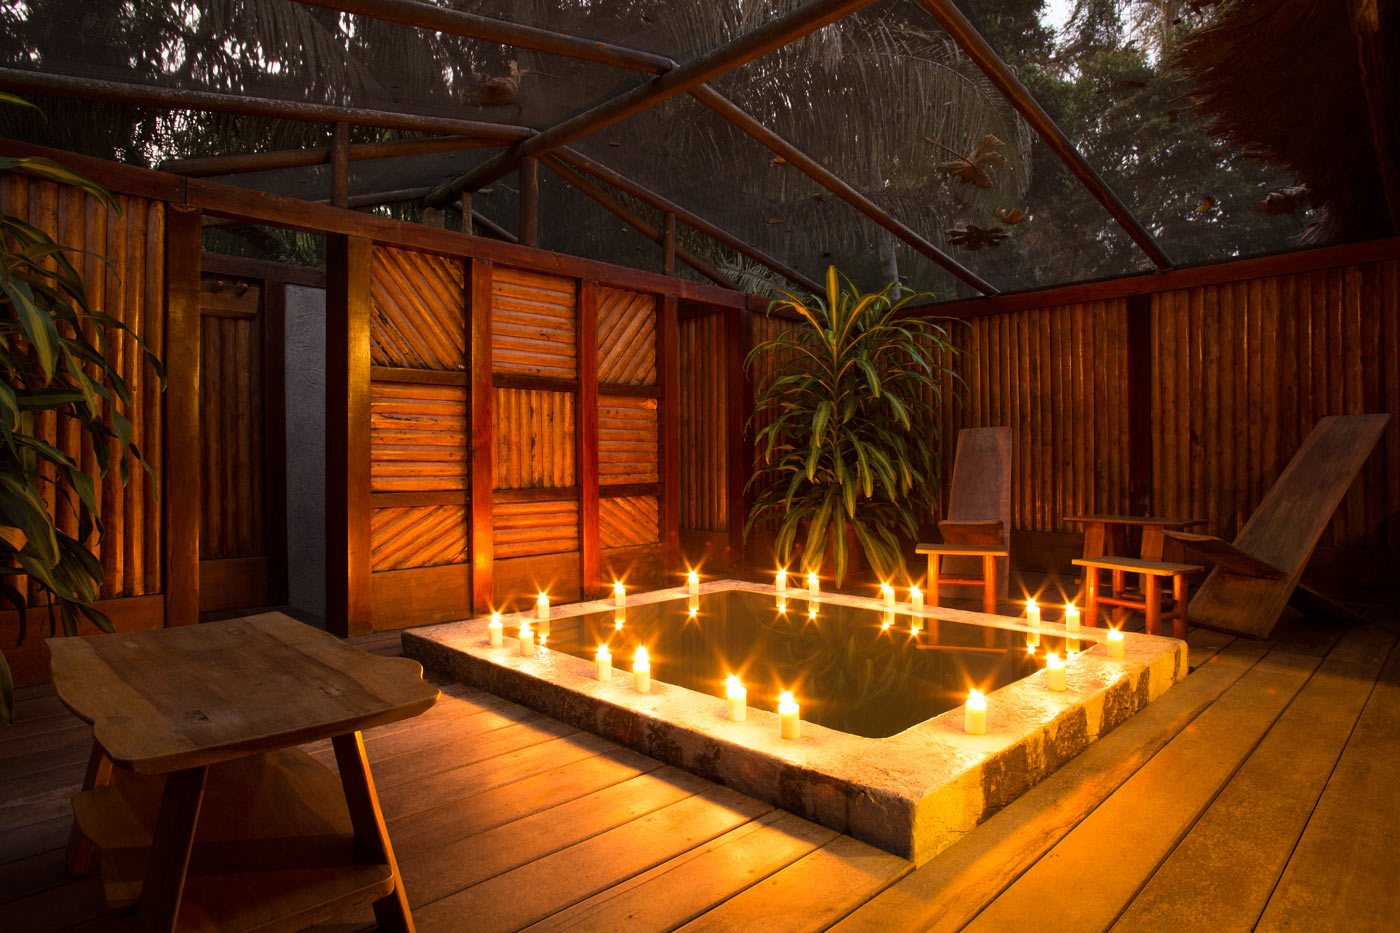 Inkaterra Reserva Amazonica Suite Accommodation Jungle Lodges Peruvian Amazon Peru South America South American Travel Specialists